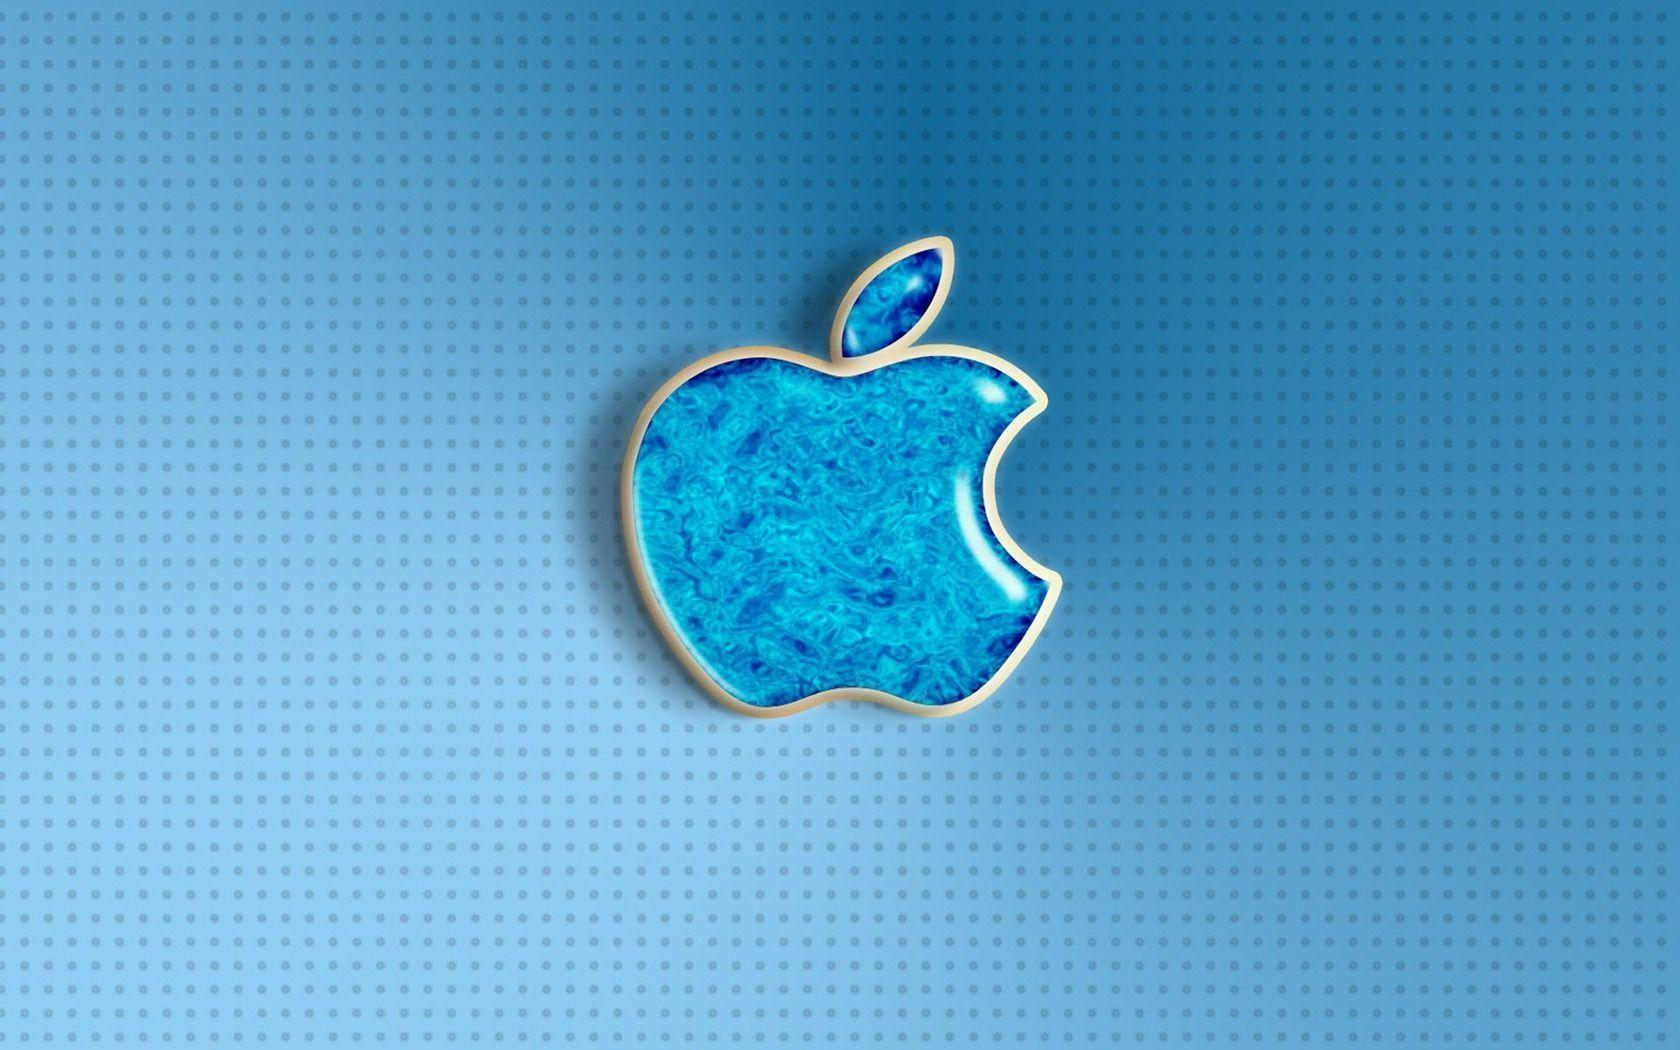 blue apple logo hd - photo #22